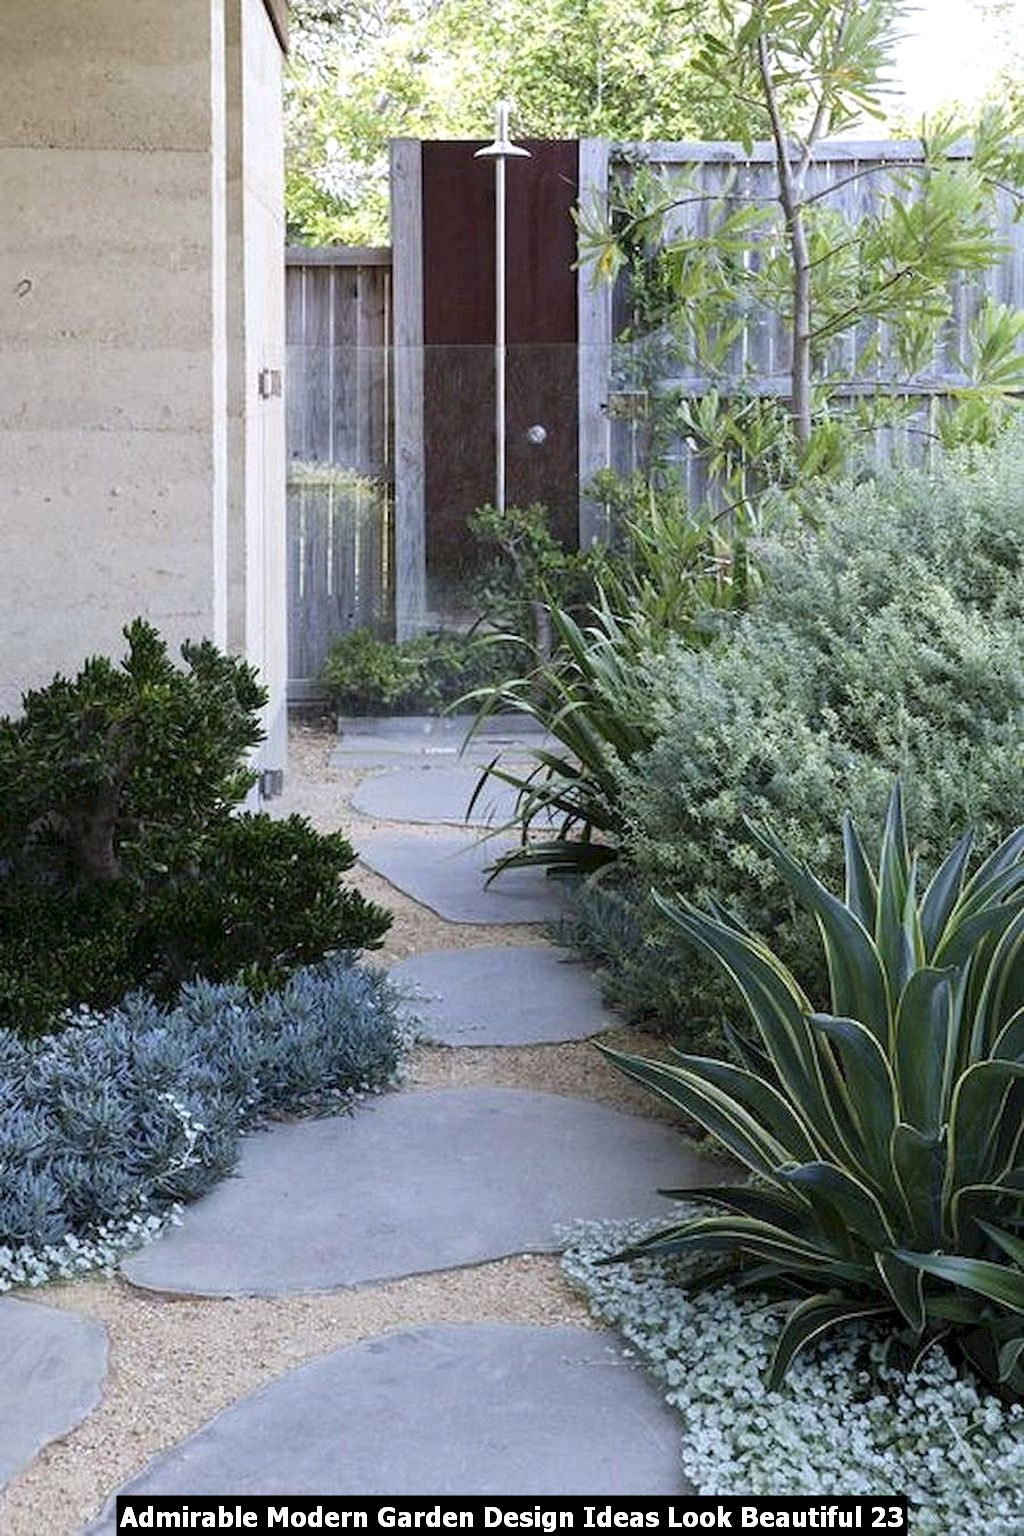 Admirable Modern Garden Design Ideas Look Beautiful 23